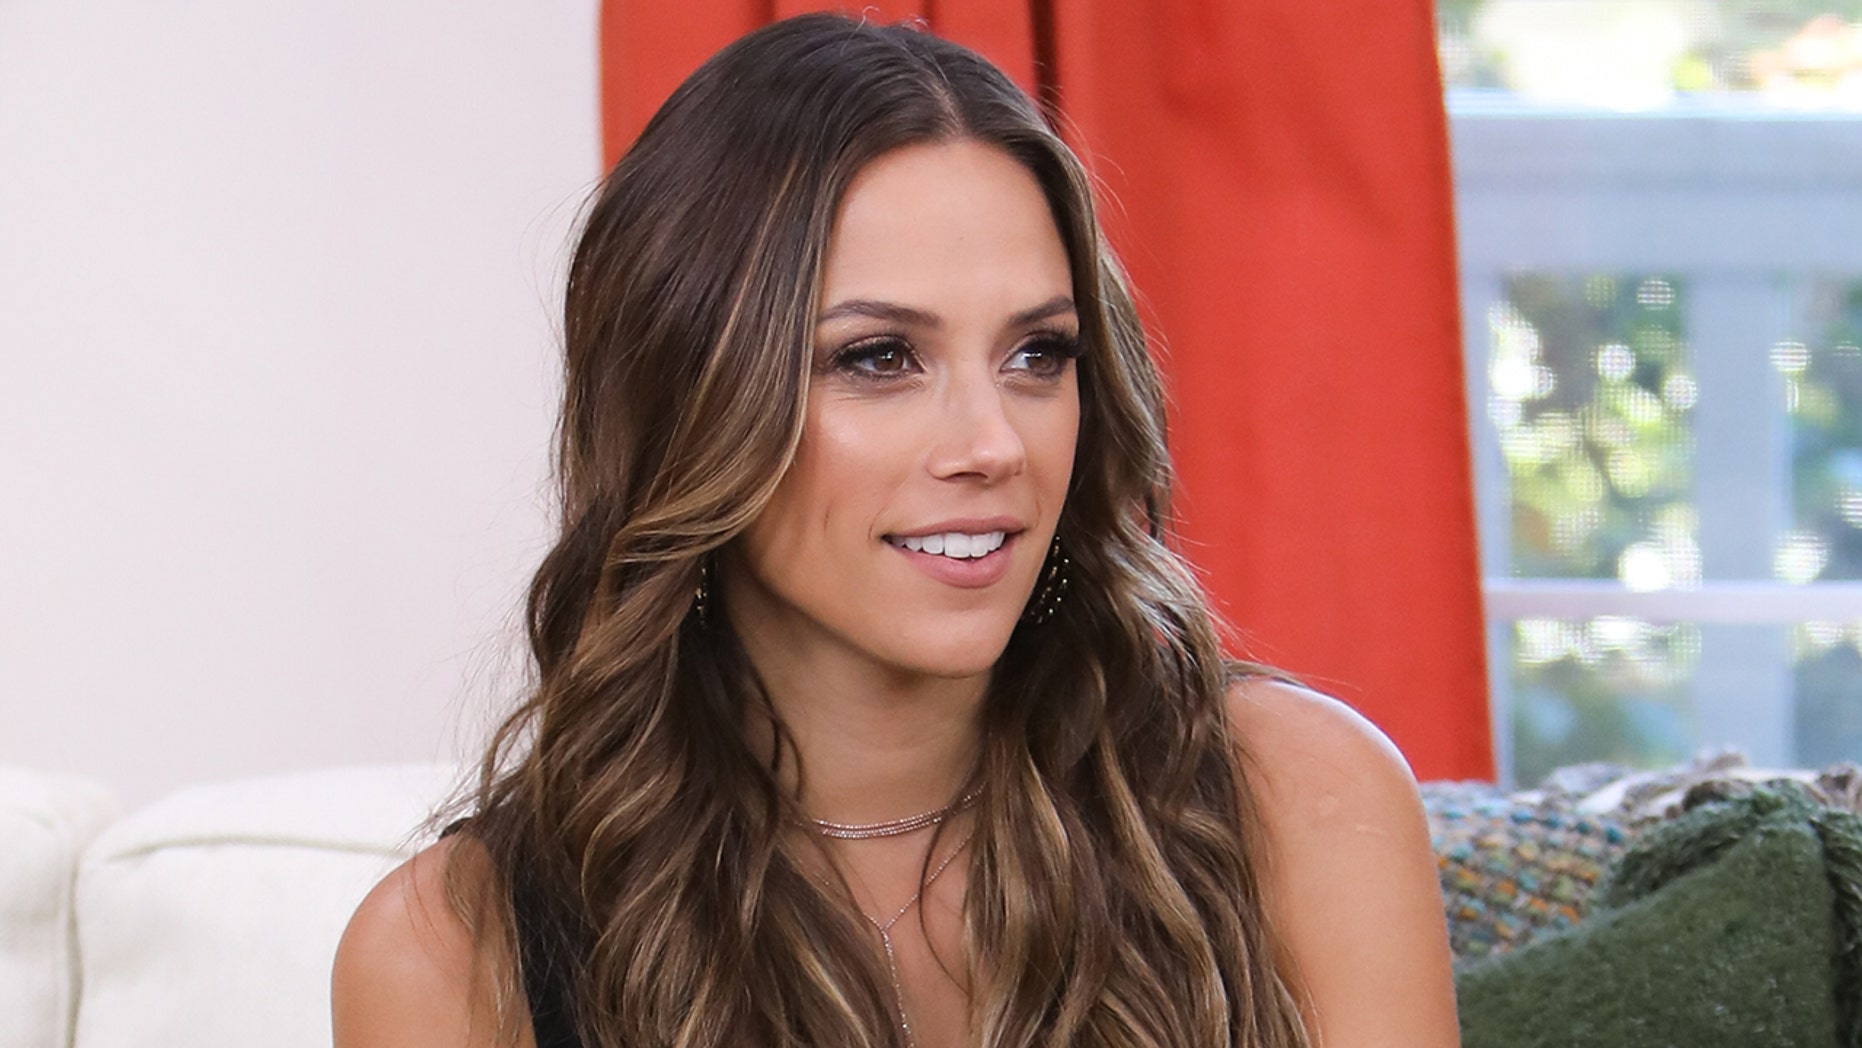 Country singer Jana Kramer fired back at people criticizing her parenting.